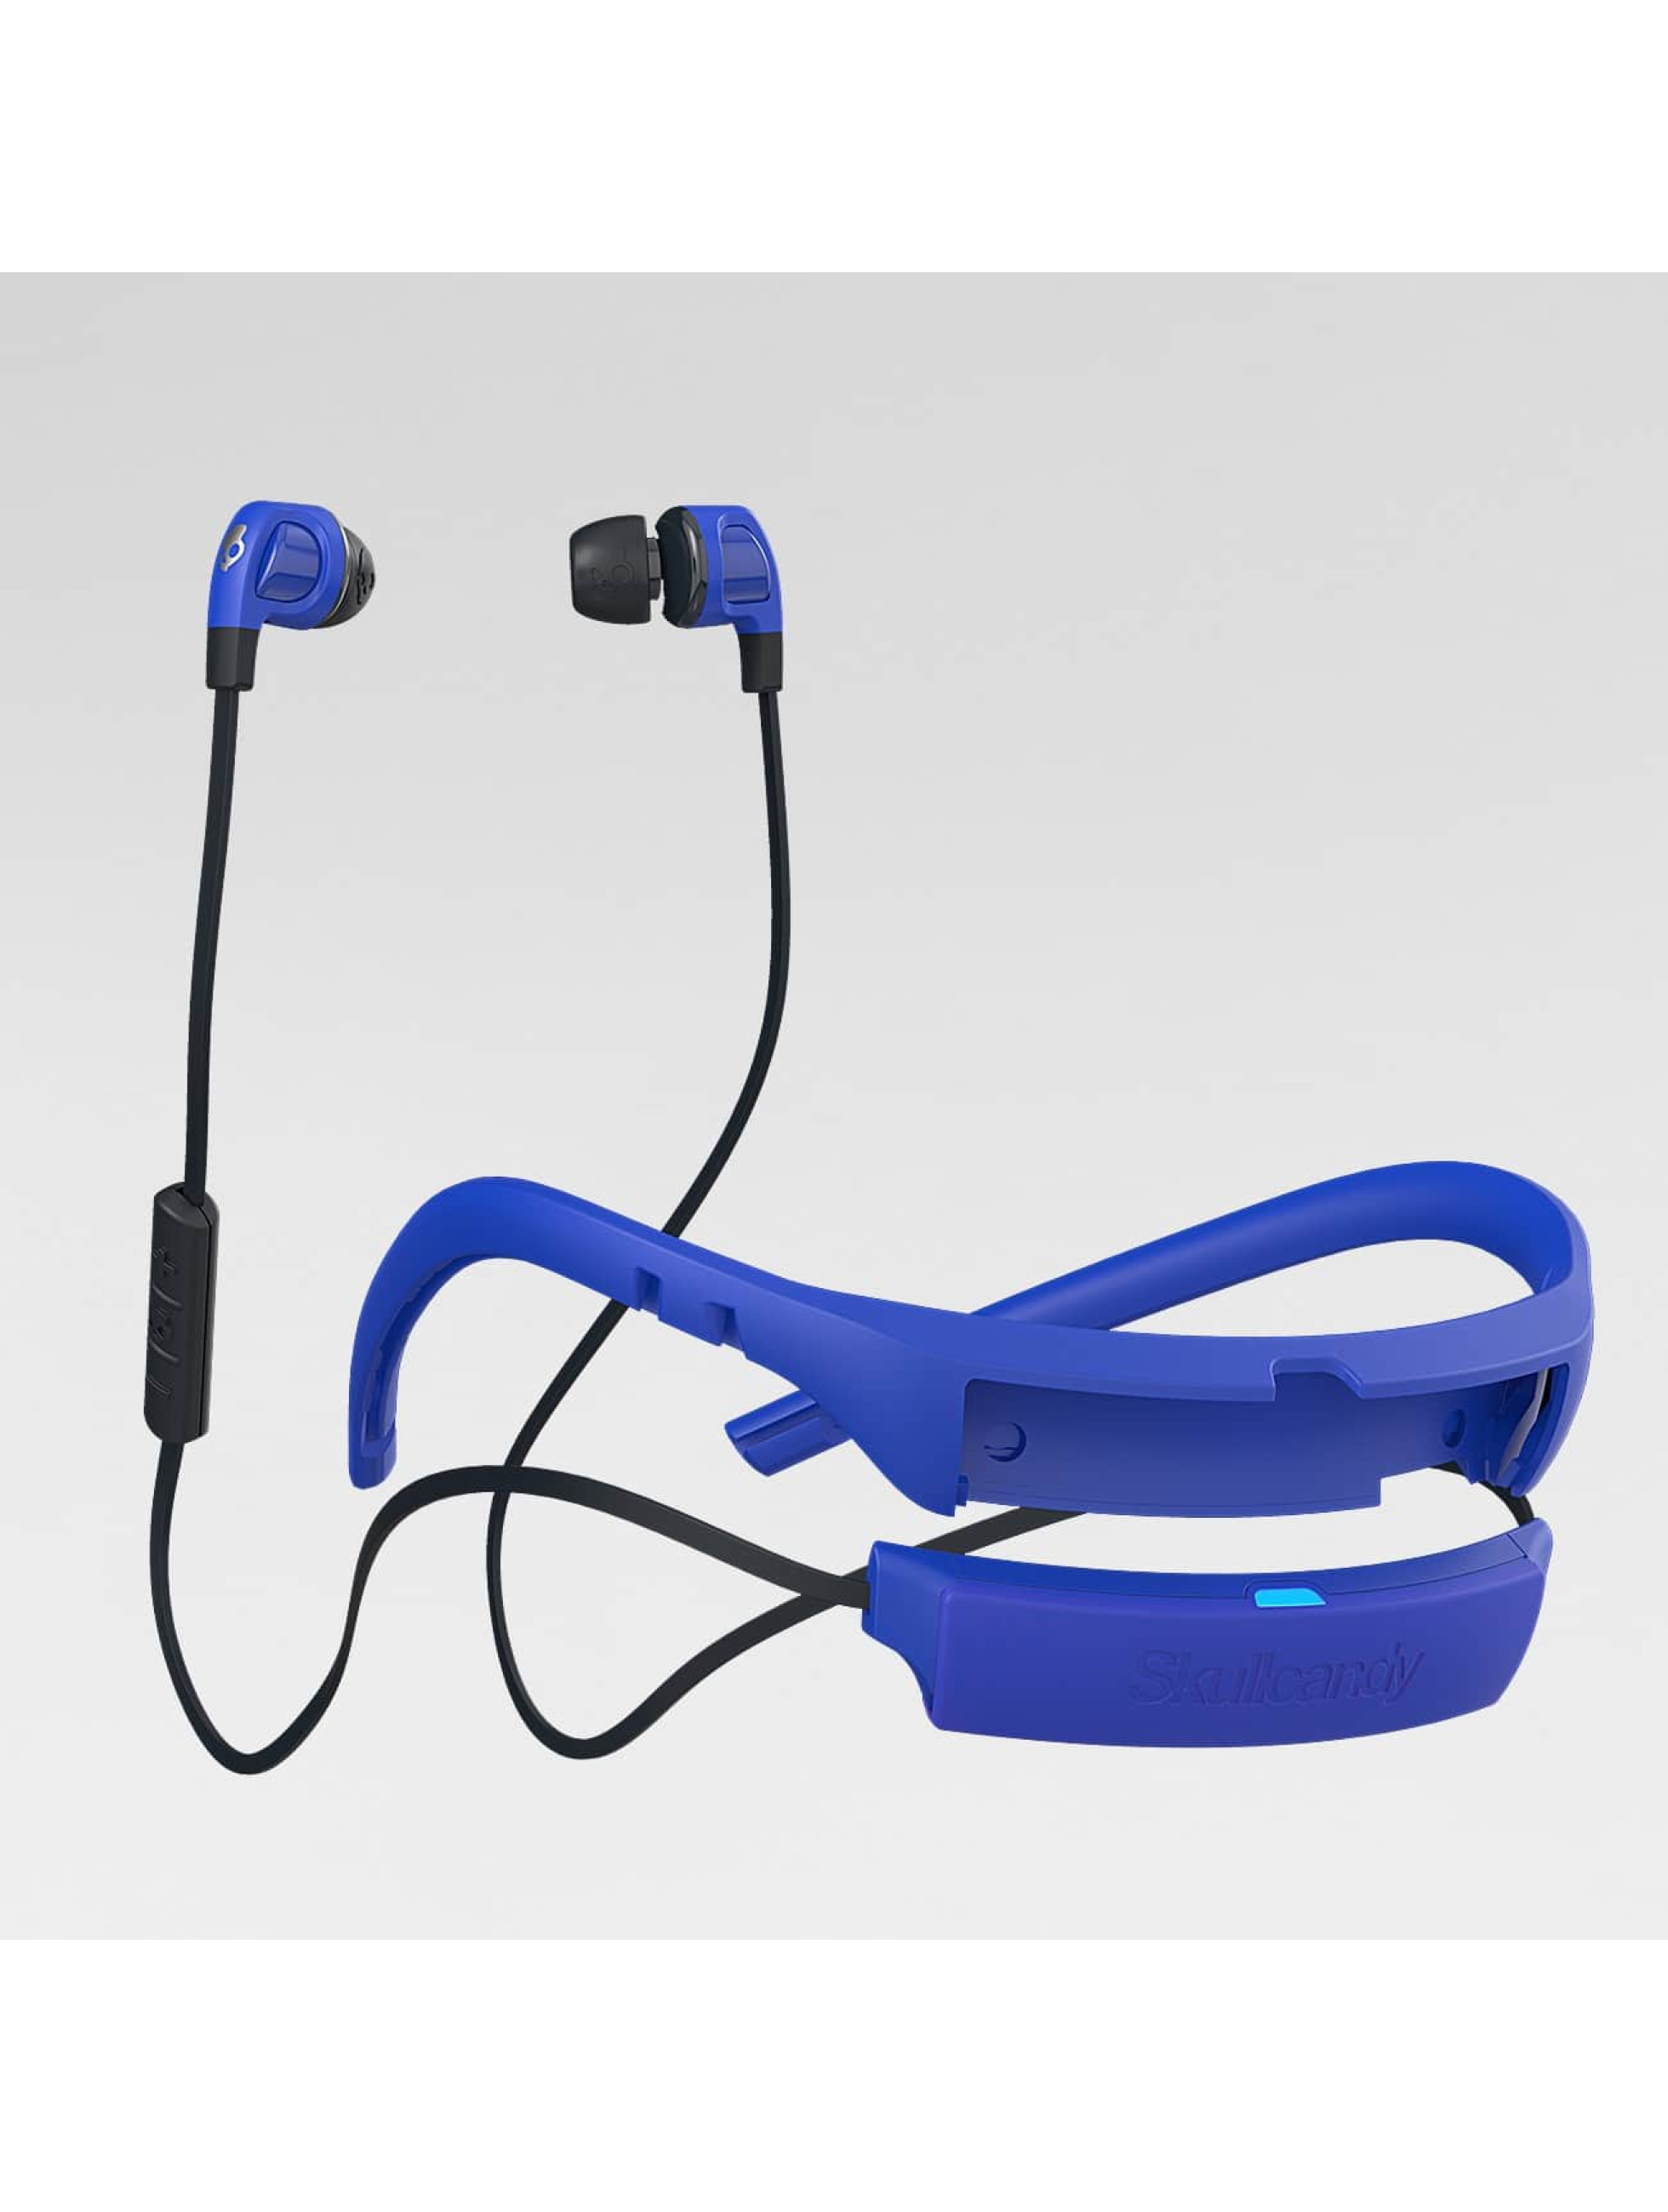 Skullcandy Auriculares Smokin Bud 2 Wireless azul